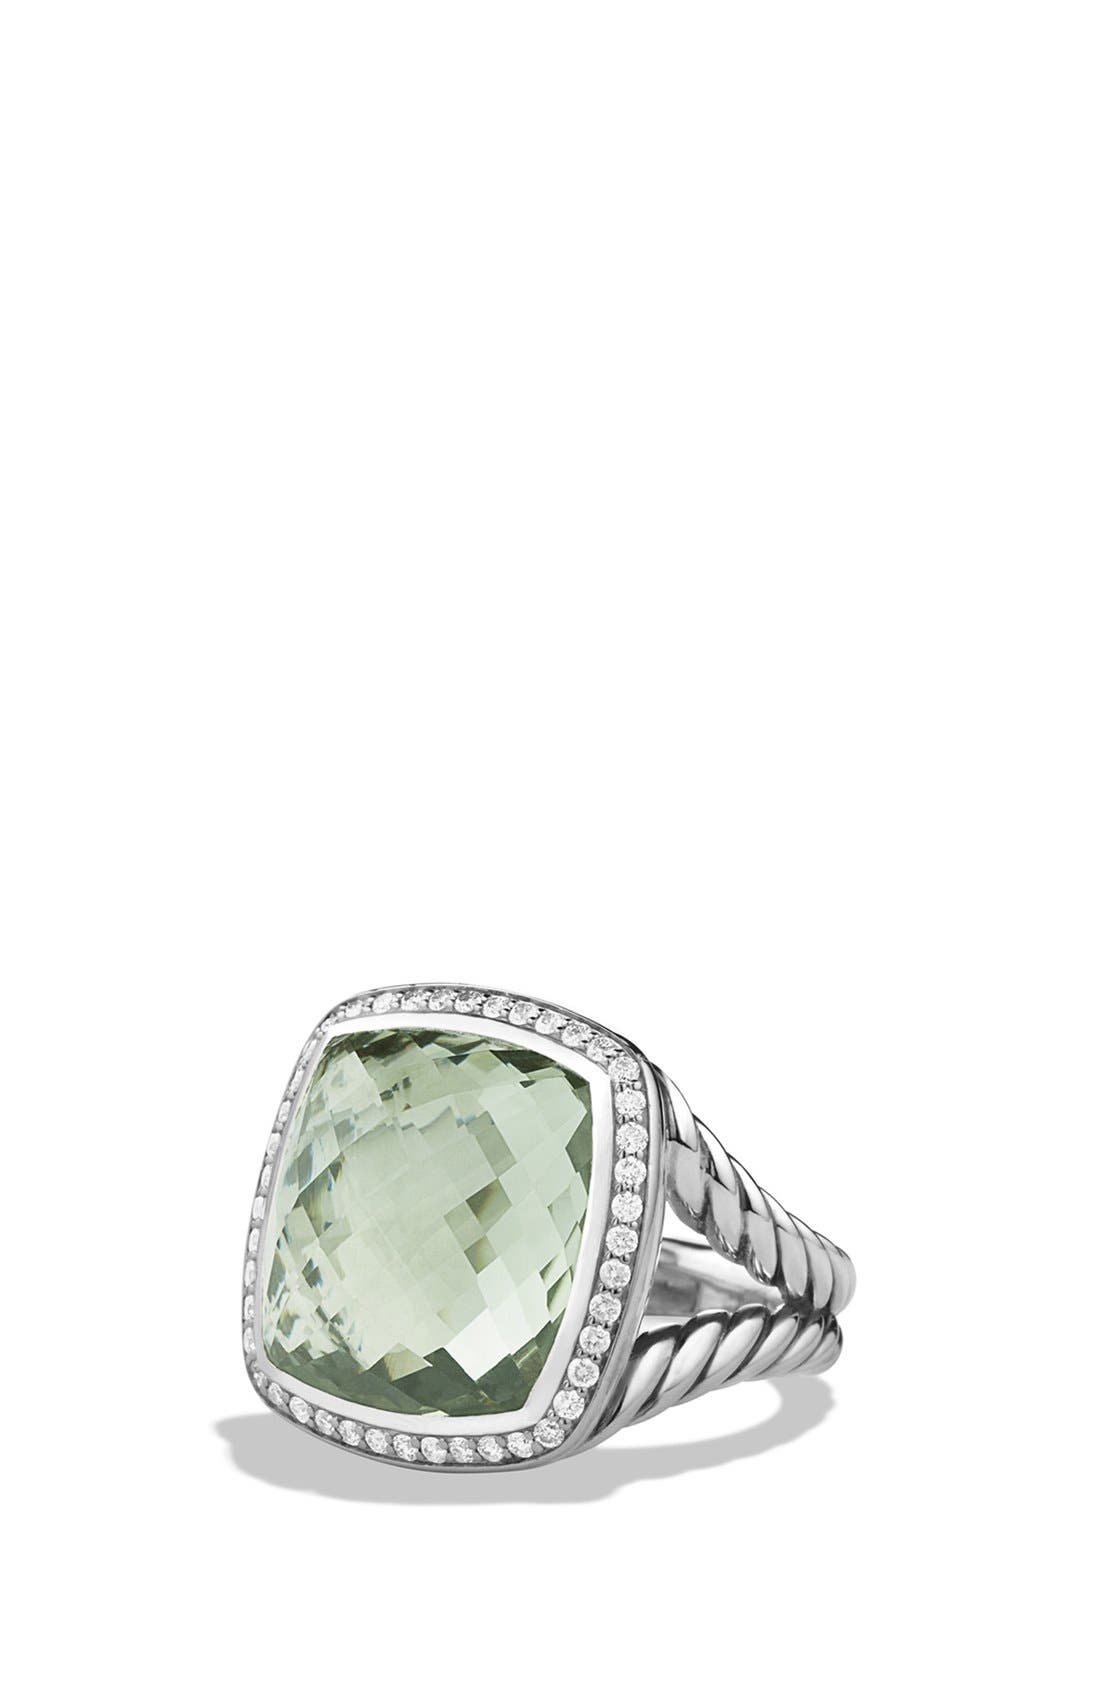 'Albion' Ring with Diamonds,                             Main thumbnail 1, color,                             Prasiolite